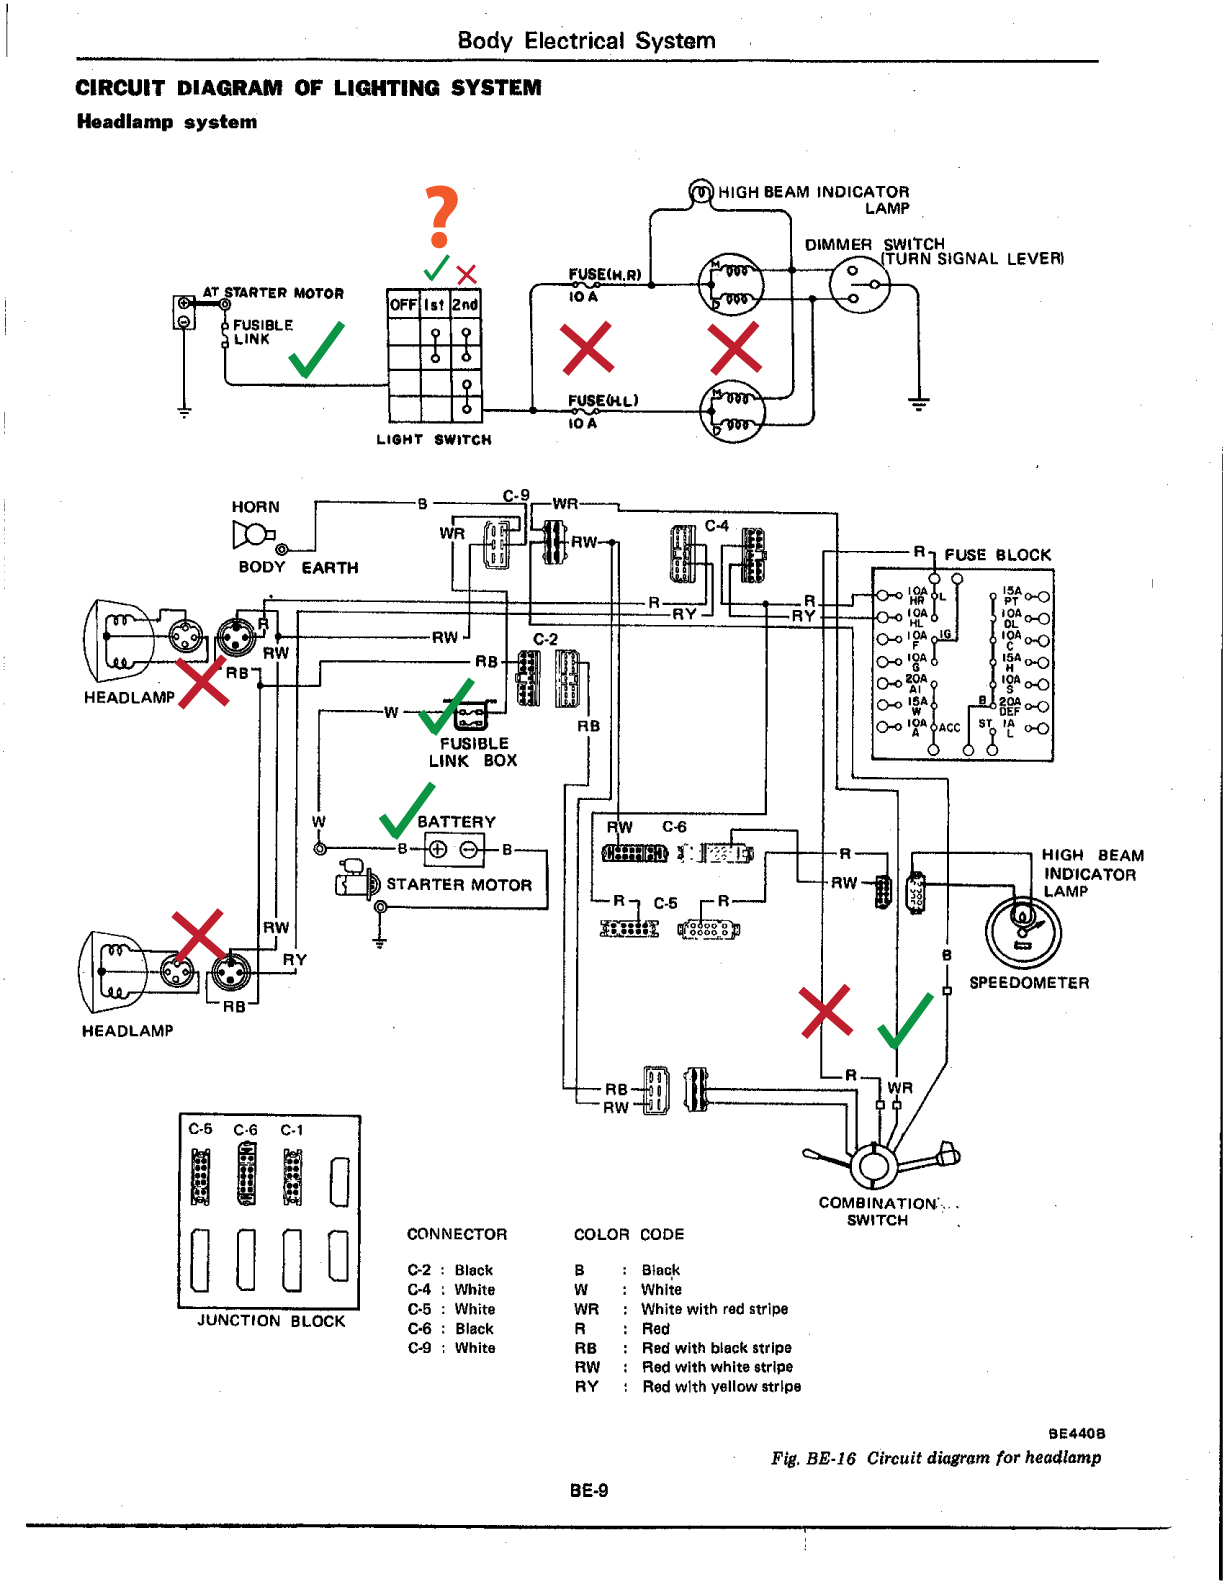 Datsun 240z Headlight Wiring Diagram 36 Images Cabrio Relay And Fuse Box Wire Daily 280z Fsm Be 9 Goodbad A Different Upgrade 4 Relays Page 2